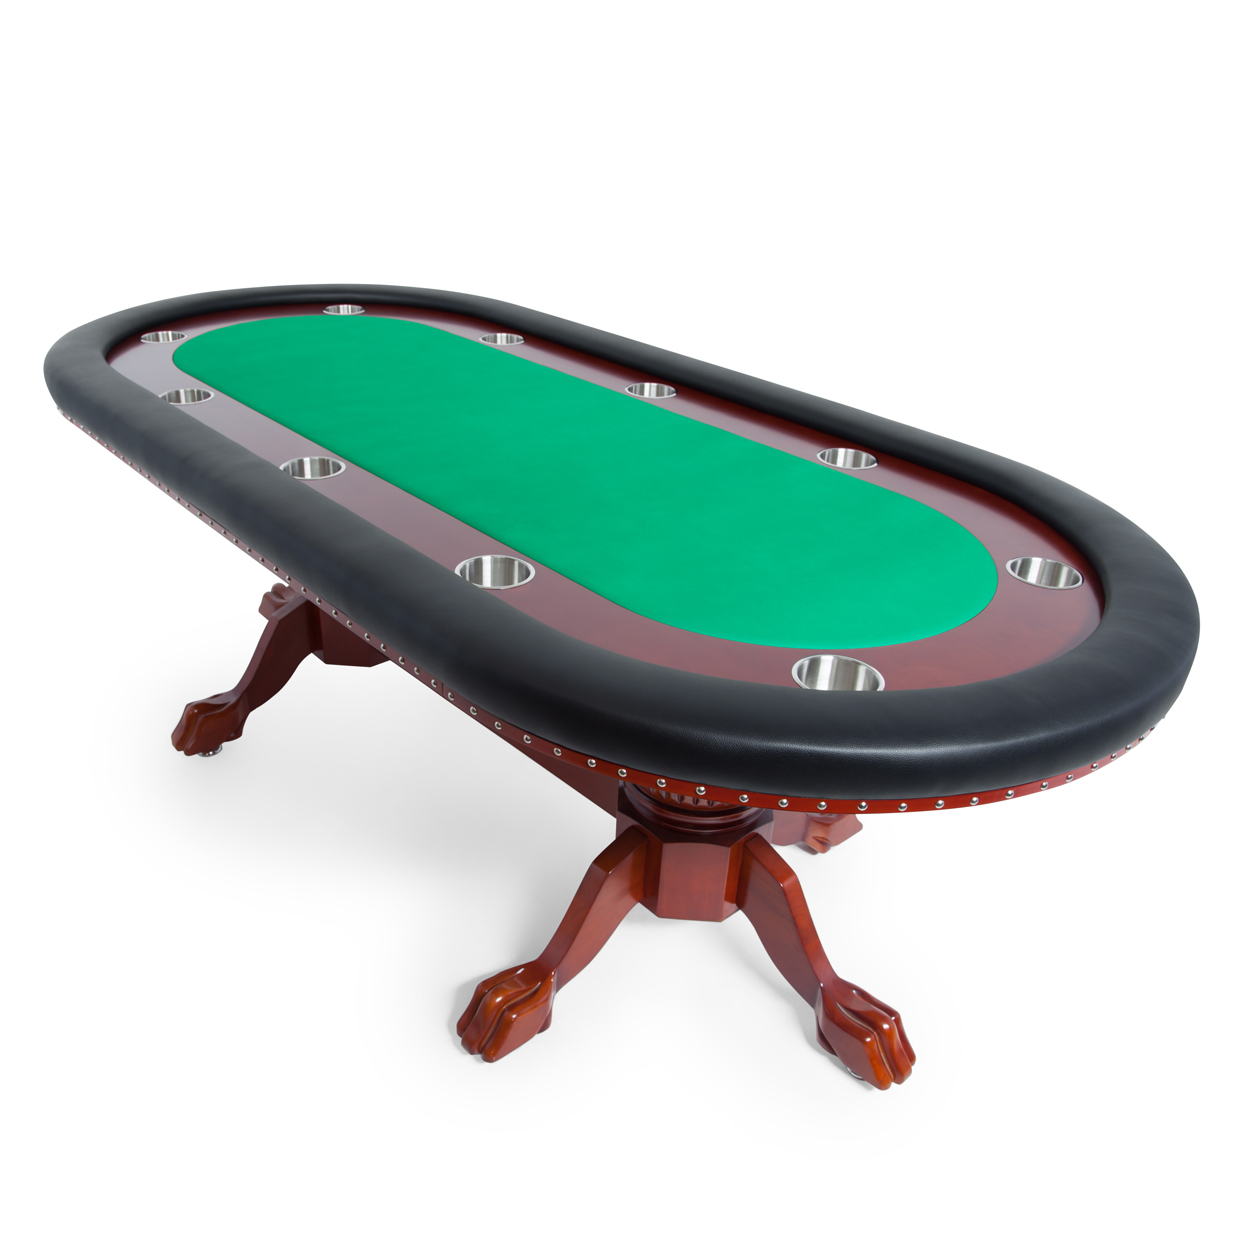 The Bing Poker Table